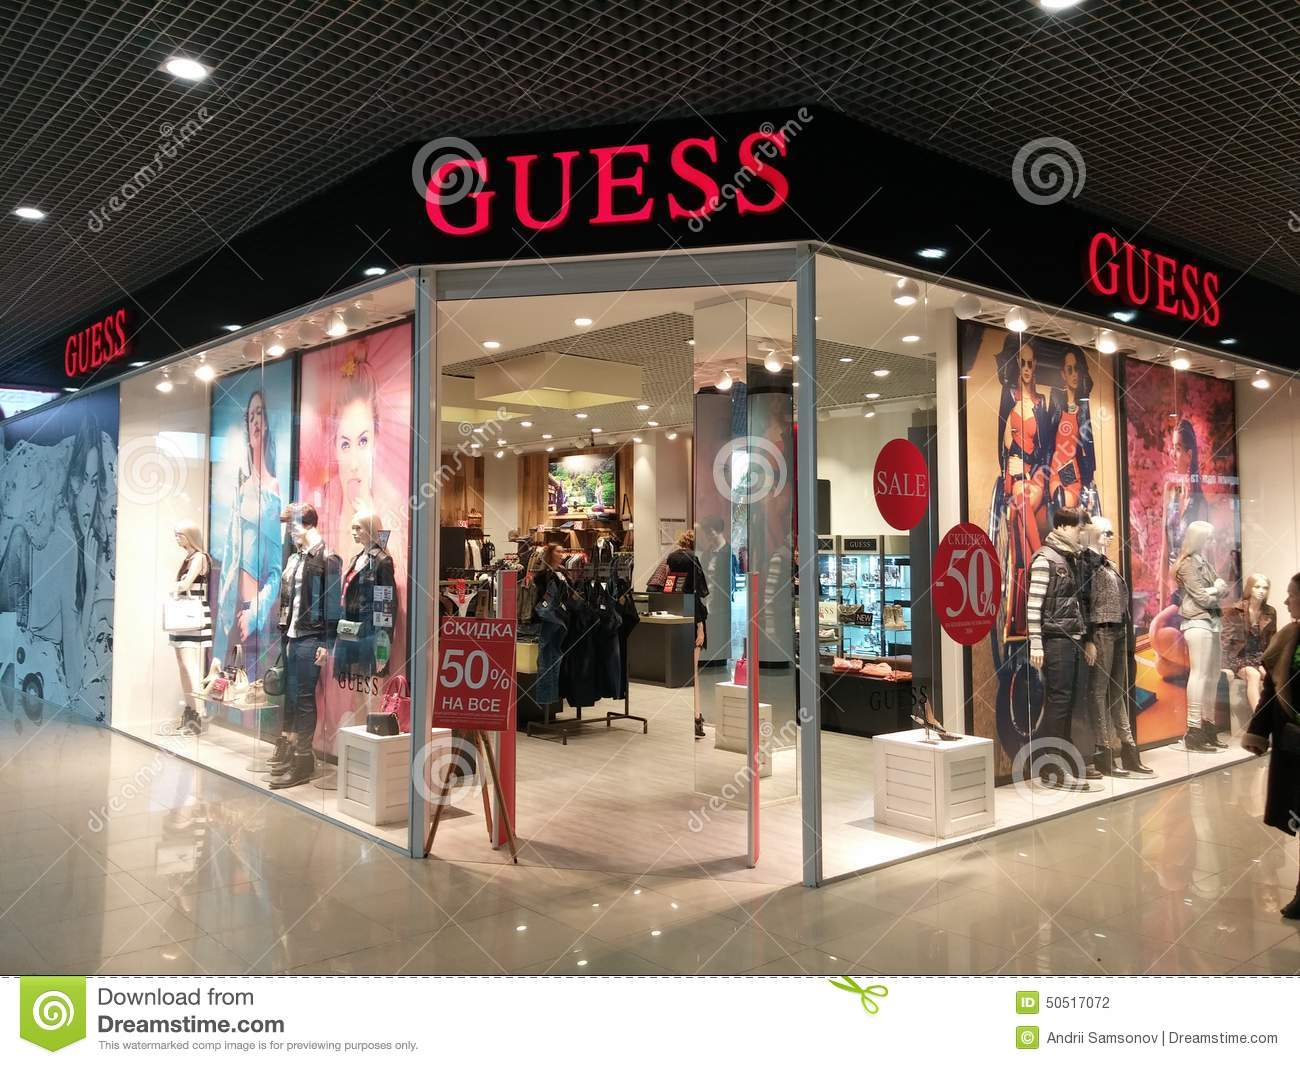 Guess clothing store